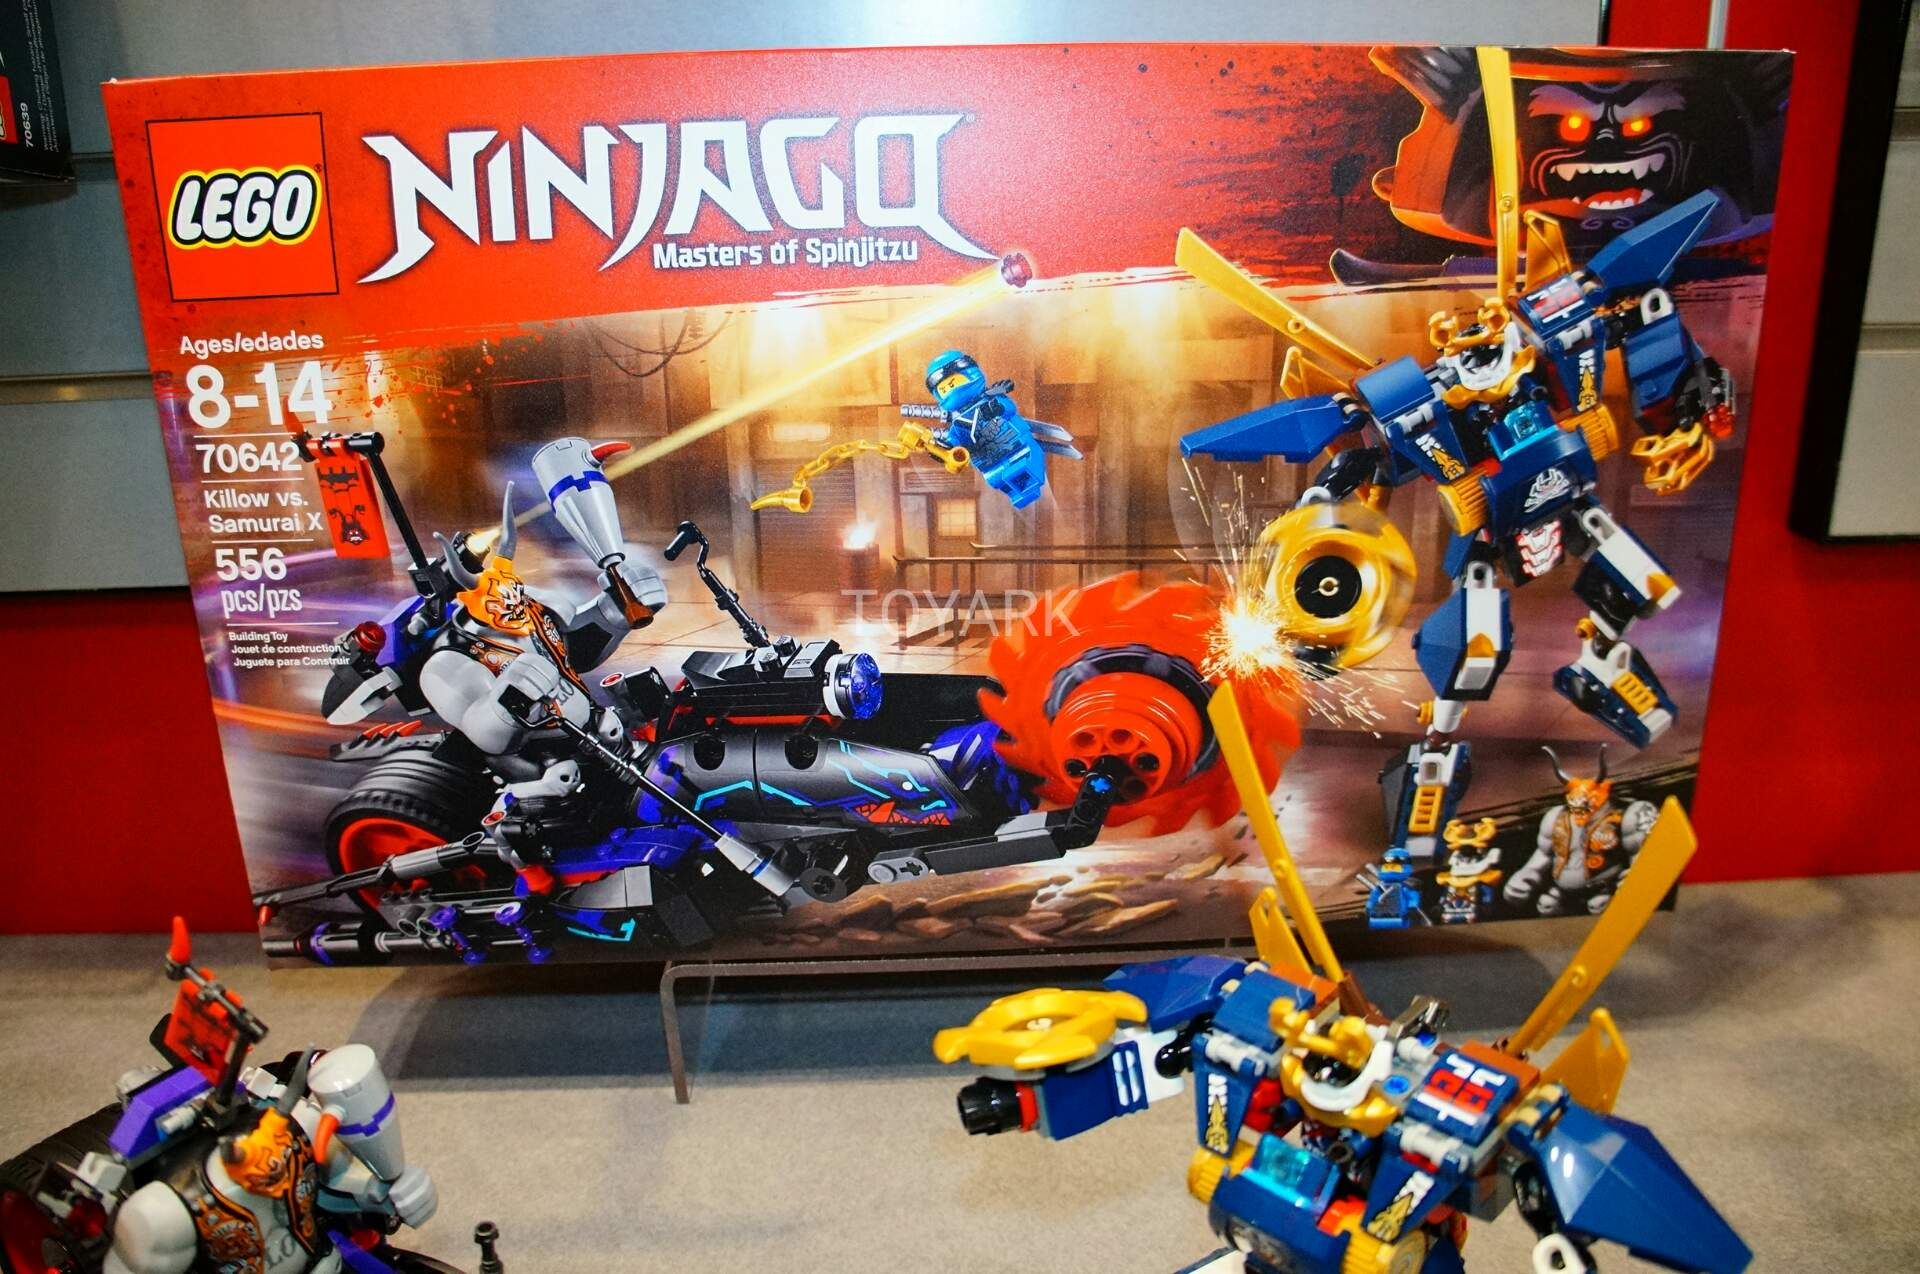 Fair 2018 Toyark Gallery News The Ninjago Lego Toy e2bYD9IHWE